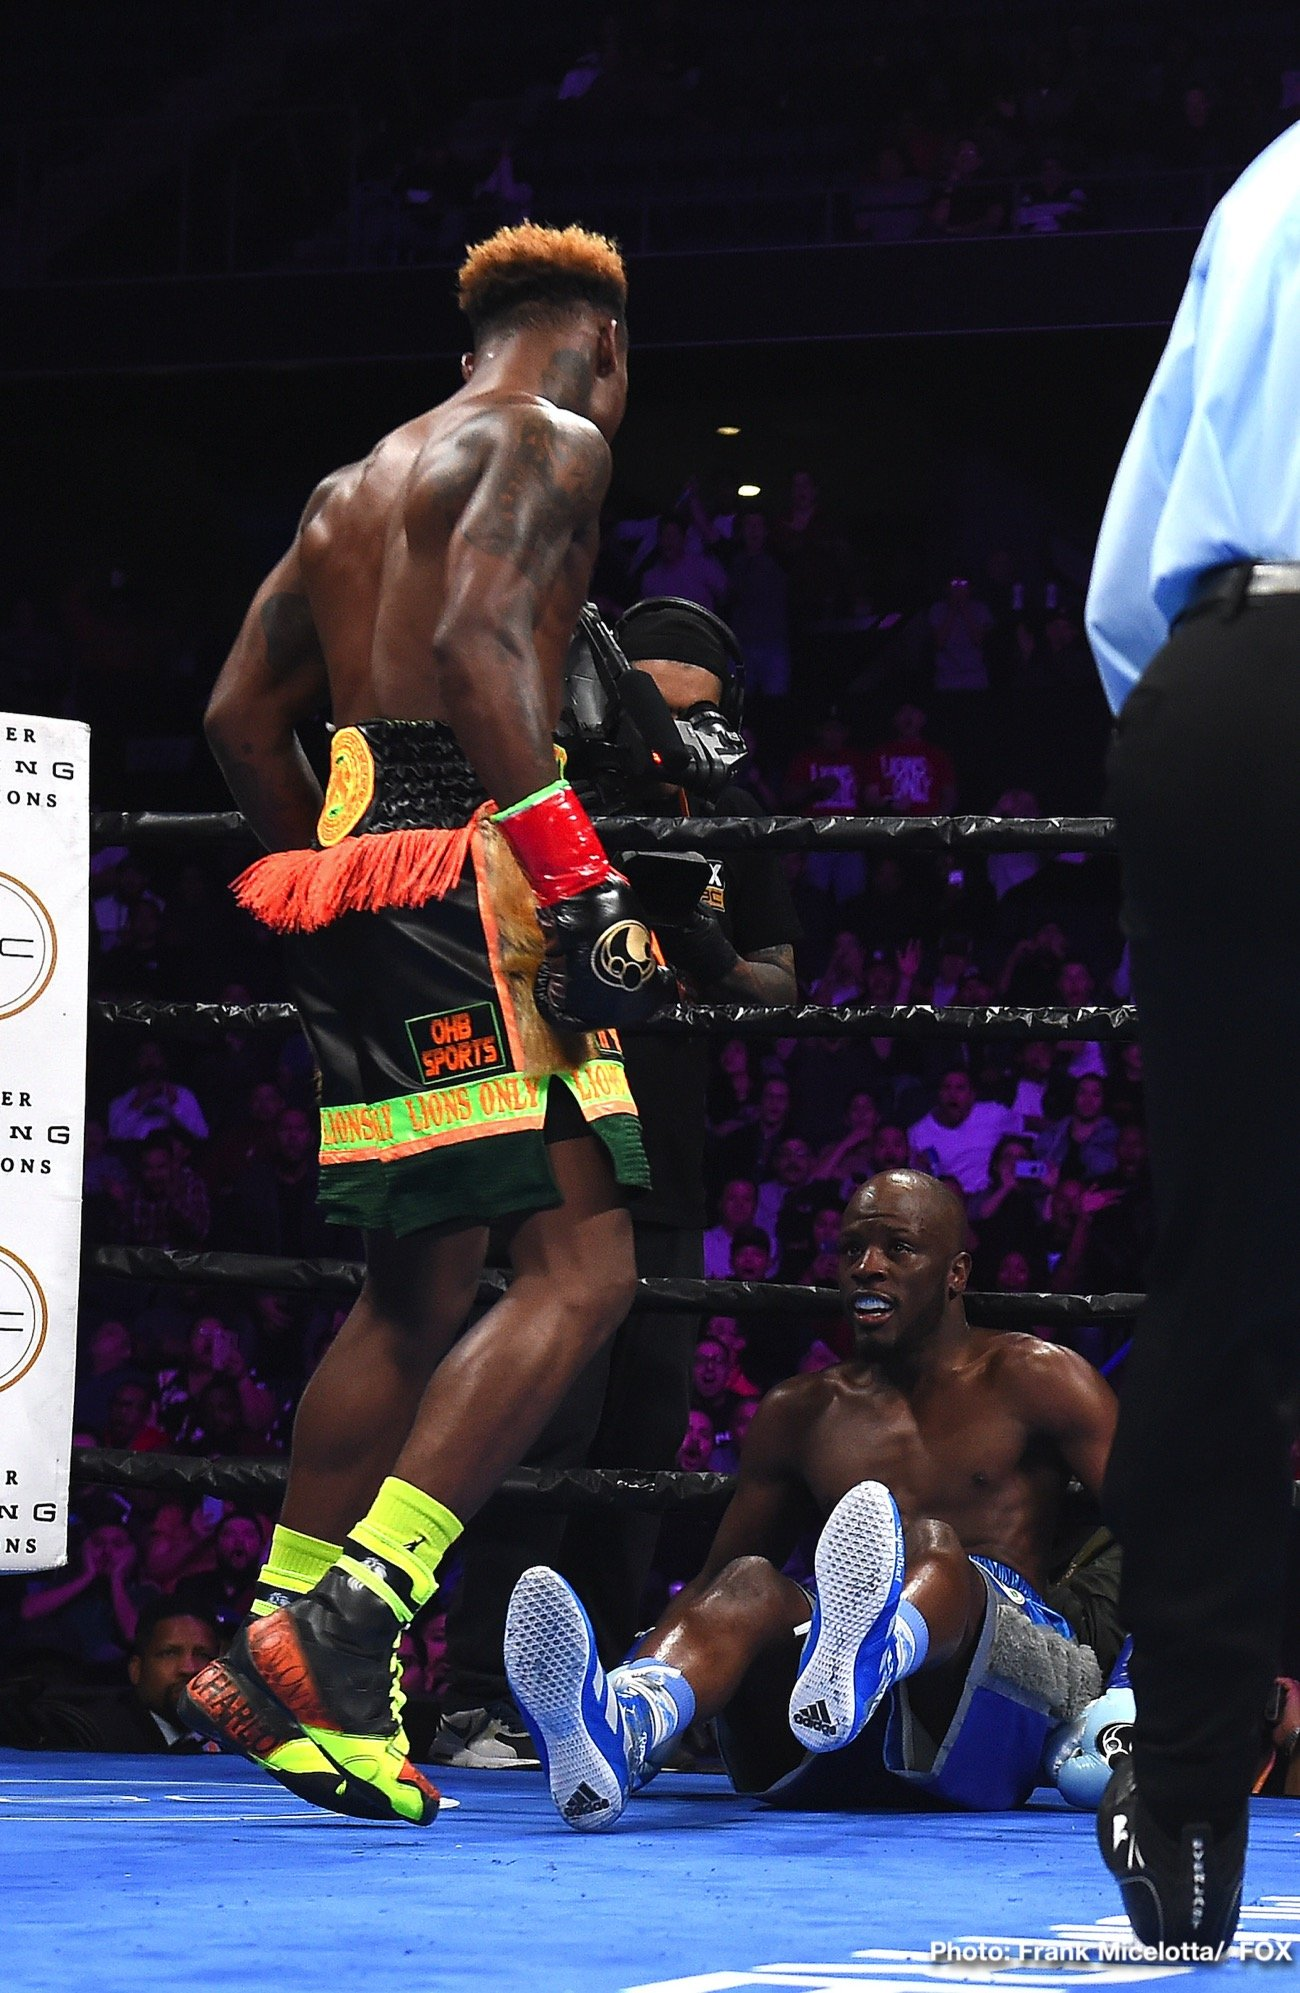 Tony Harrison - The purpose of this article is to dive into the one-year mark of the FOX Sports deal with Al Haymon's Premier Boxing Champions outfit. Technically, we're over a year into the deal, which officially started back in December 2018 featuring the Charlo brothers.